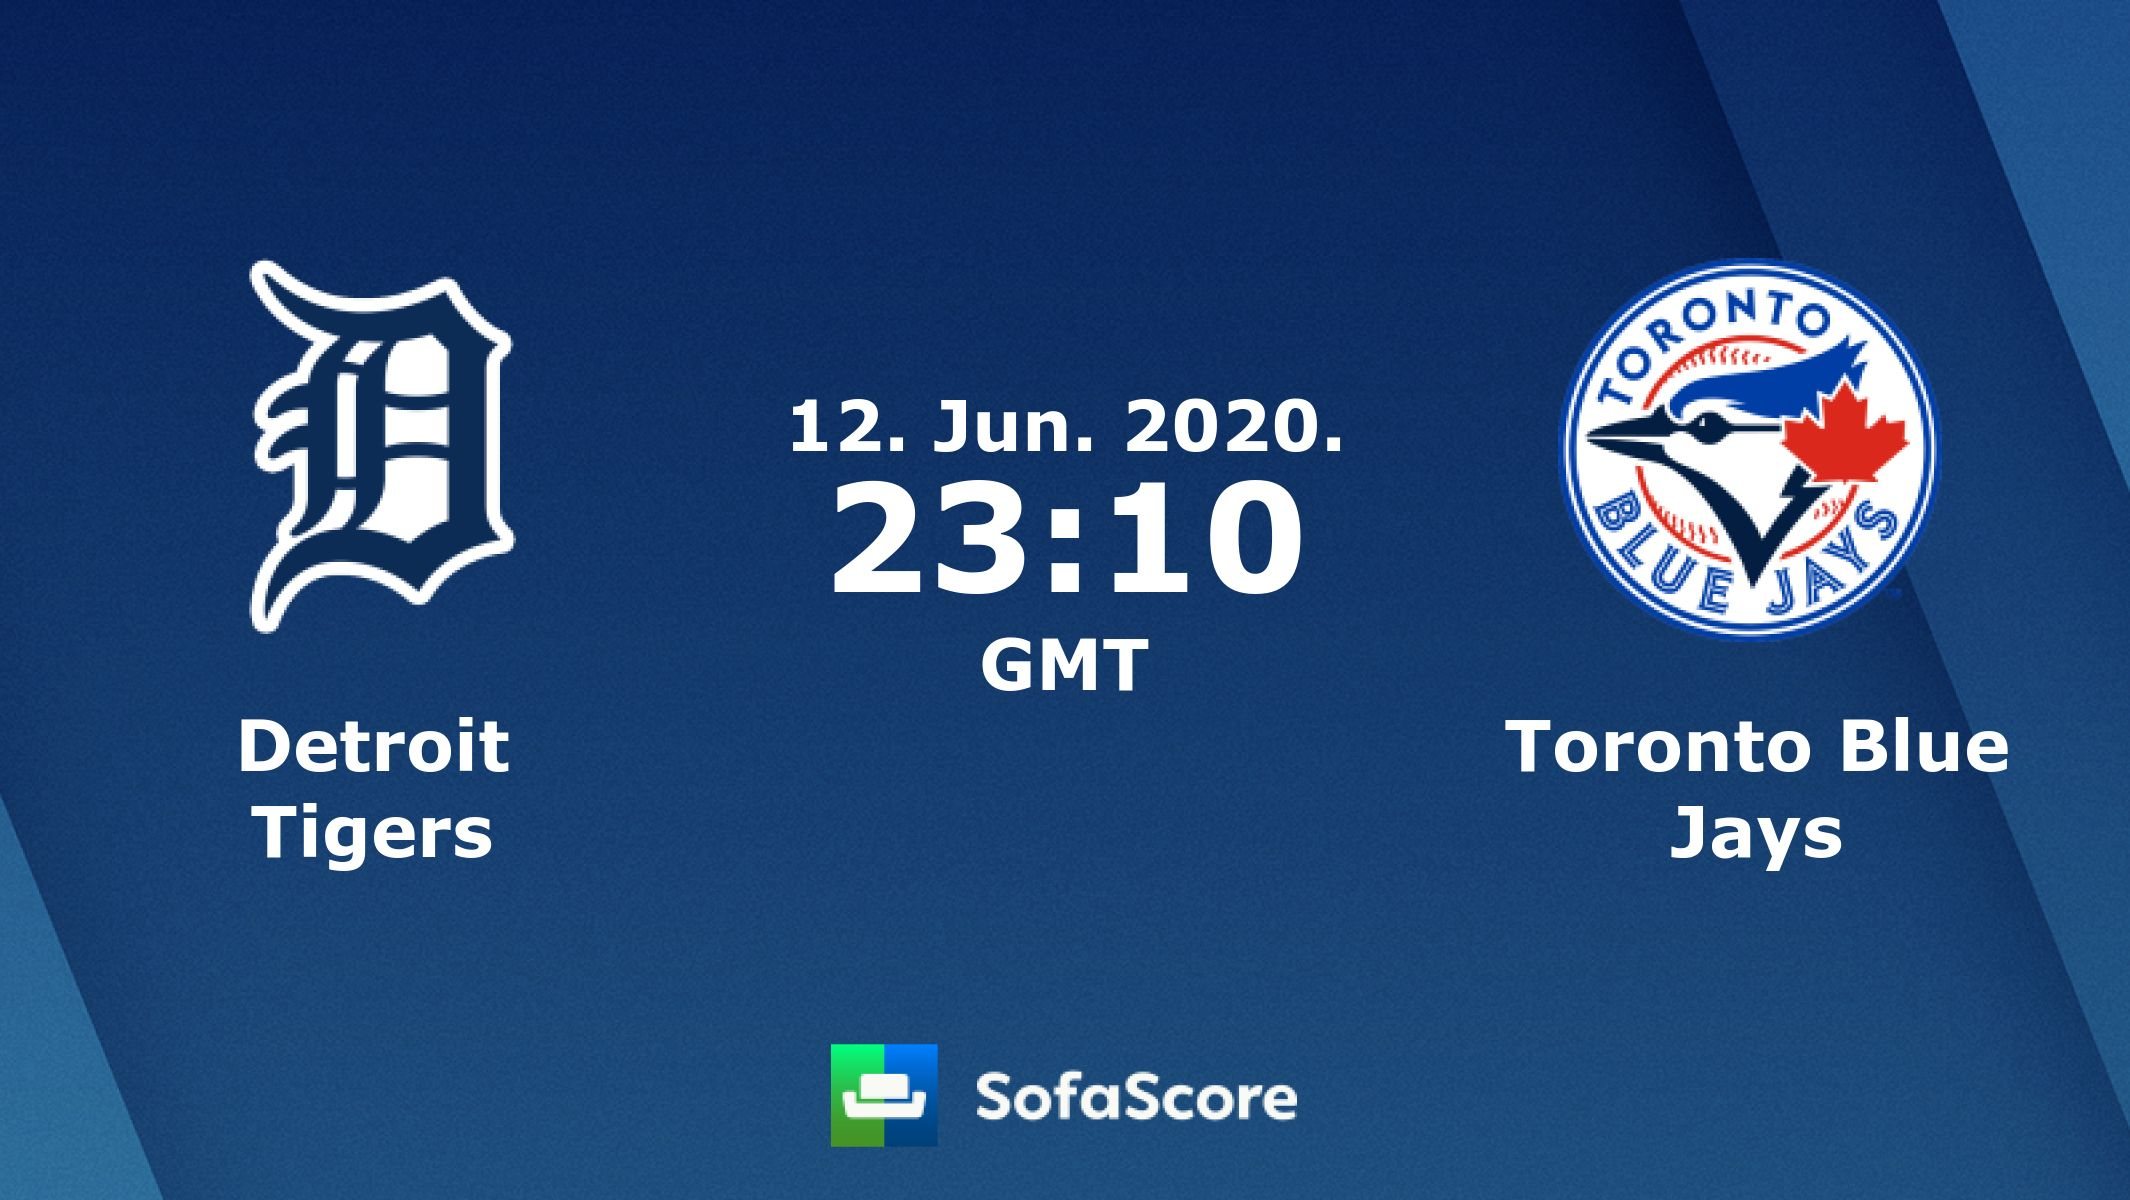 Toronto Blue Jays Detroit Tigers Sofascore In 2020 Toronto Blue Jays Detroit Tigers Blue Jays